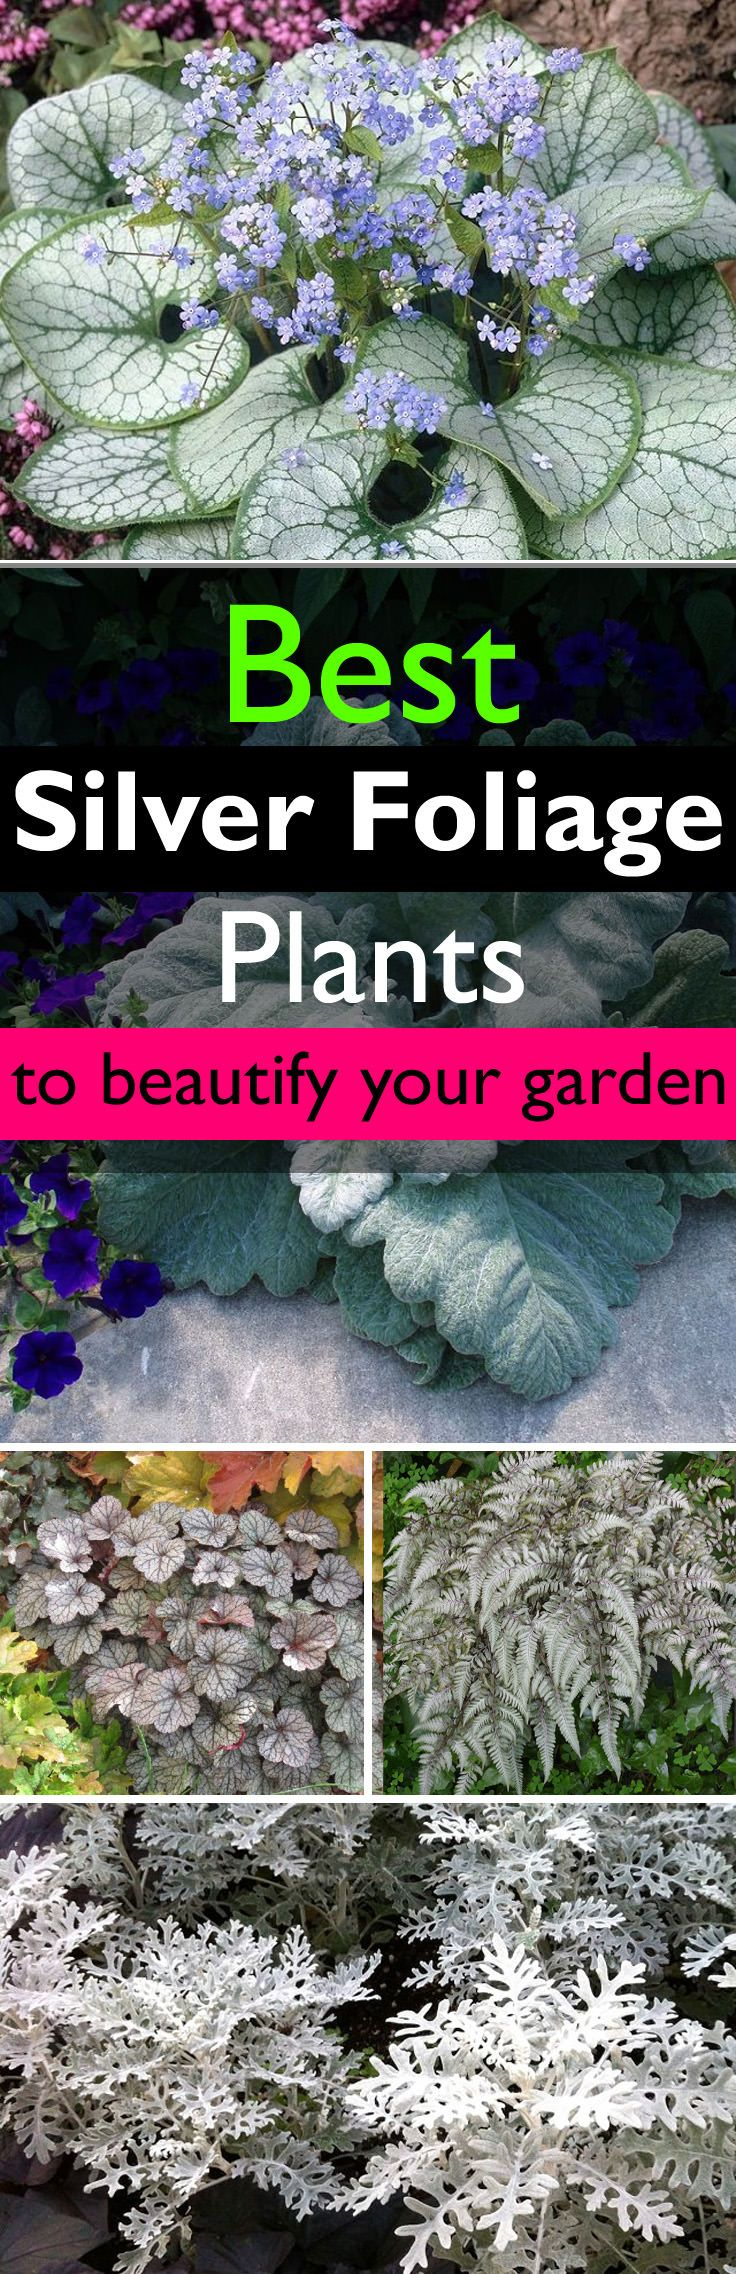 Silver foliage plants have amazing quality– they can highlight other plants and flowers in the garden. Learn more about them and find out the best you can grow.